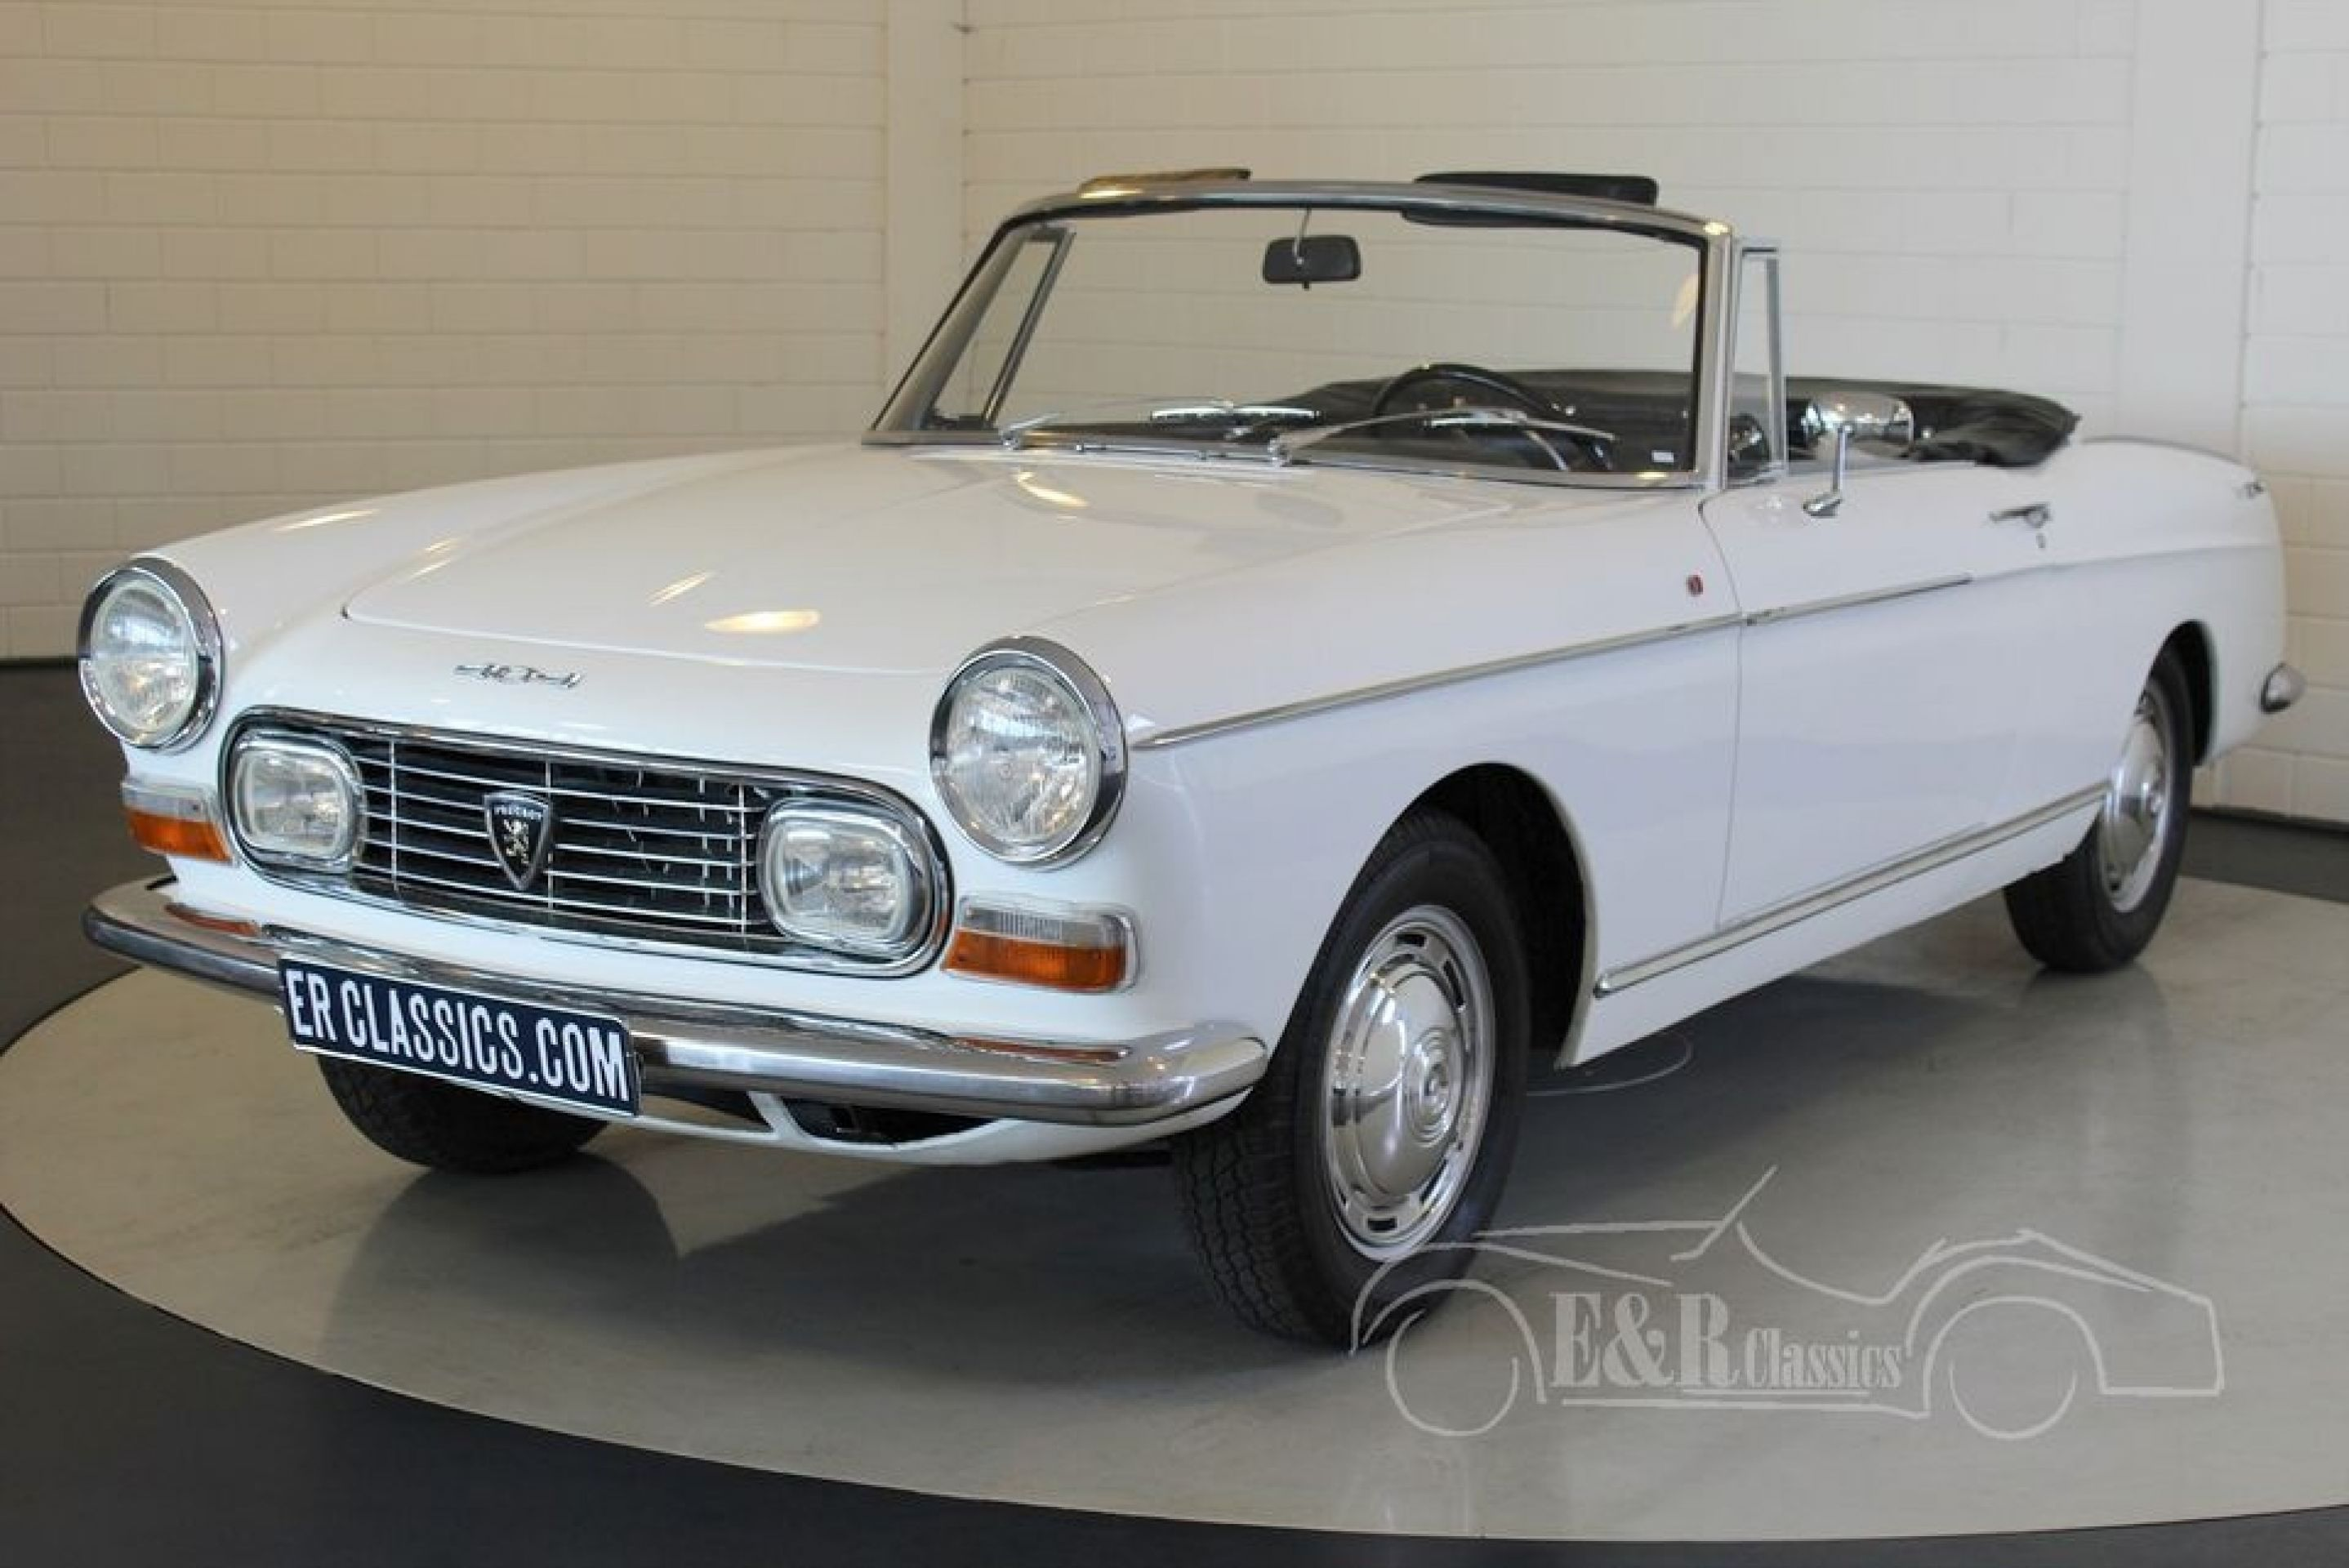 PEUGEOT 404 INJECTION CABRIOLET 1968